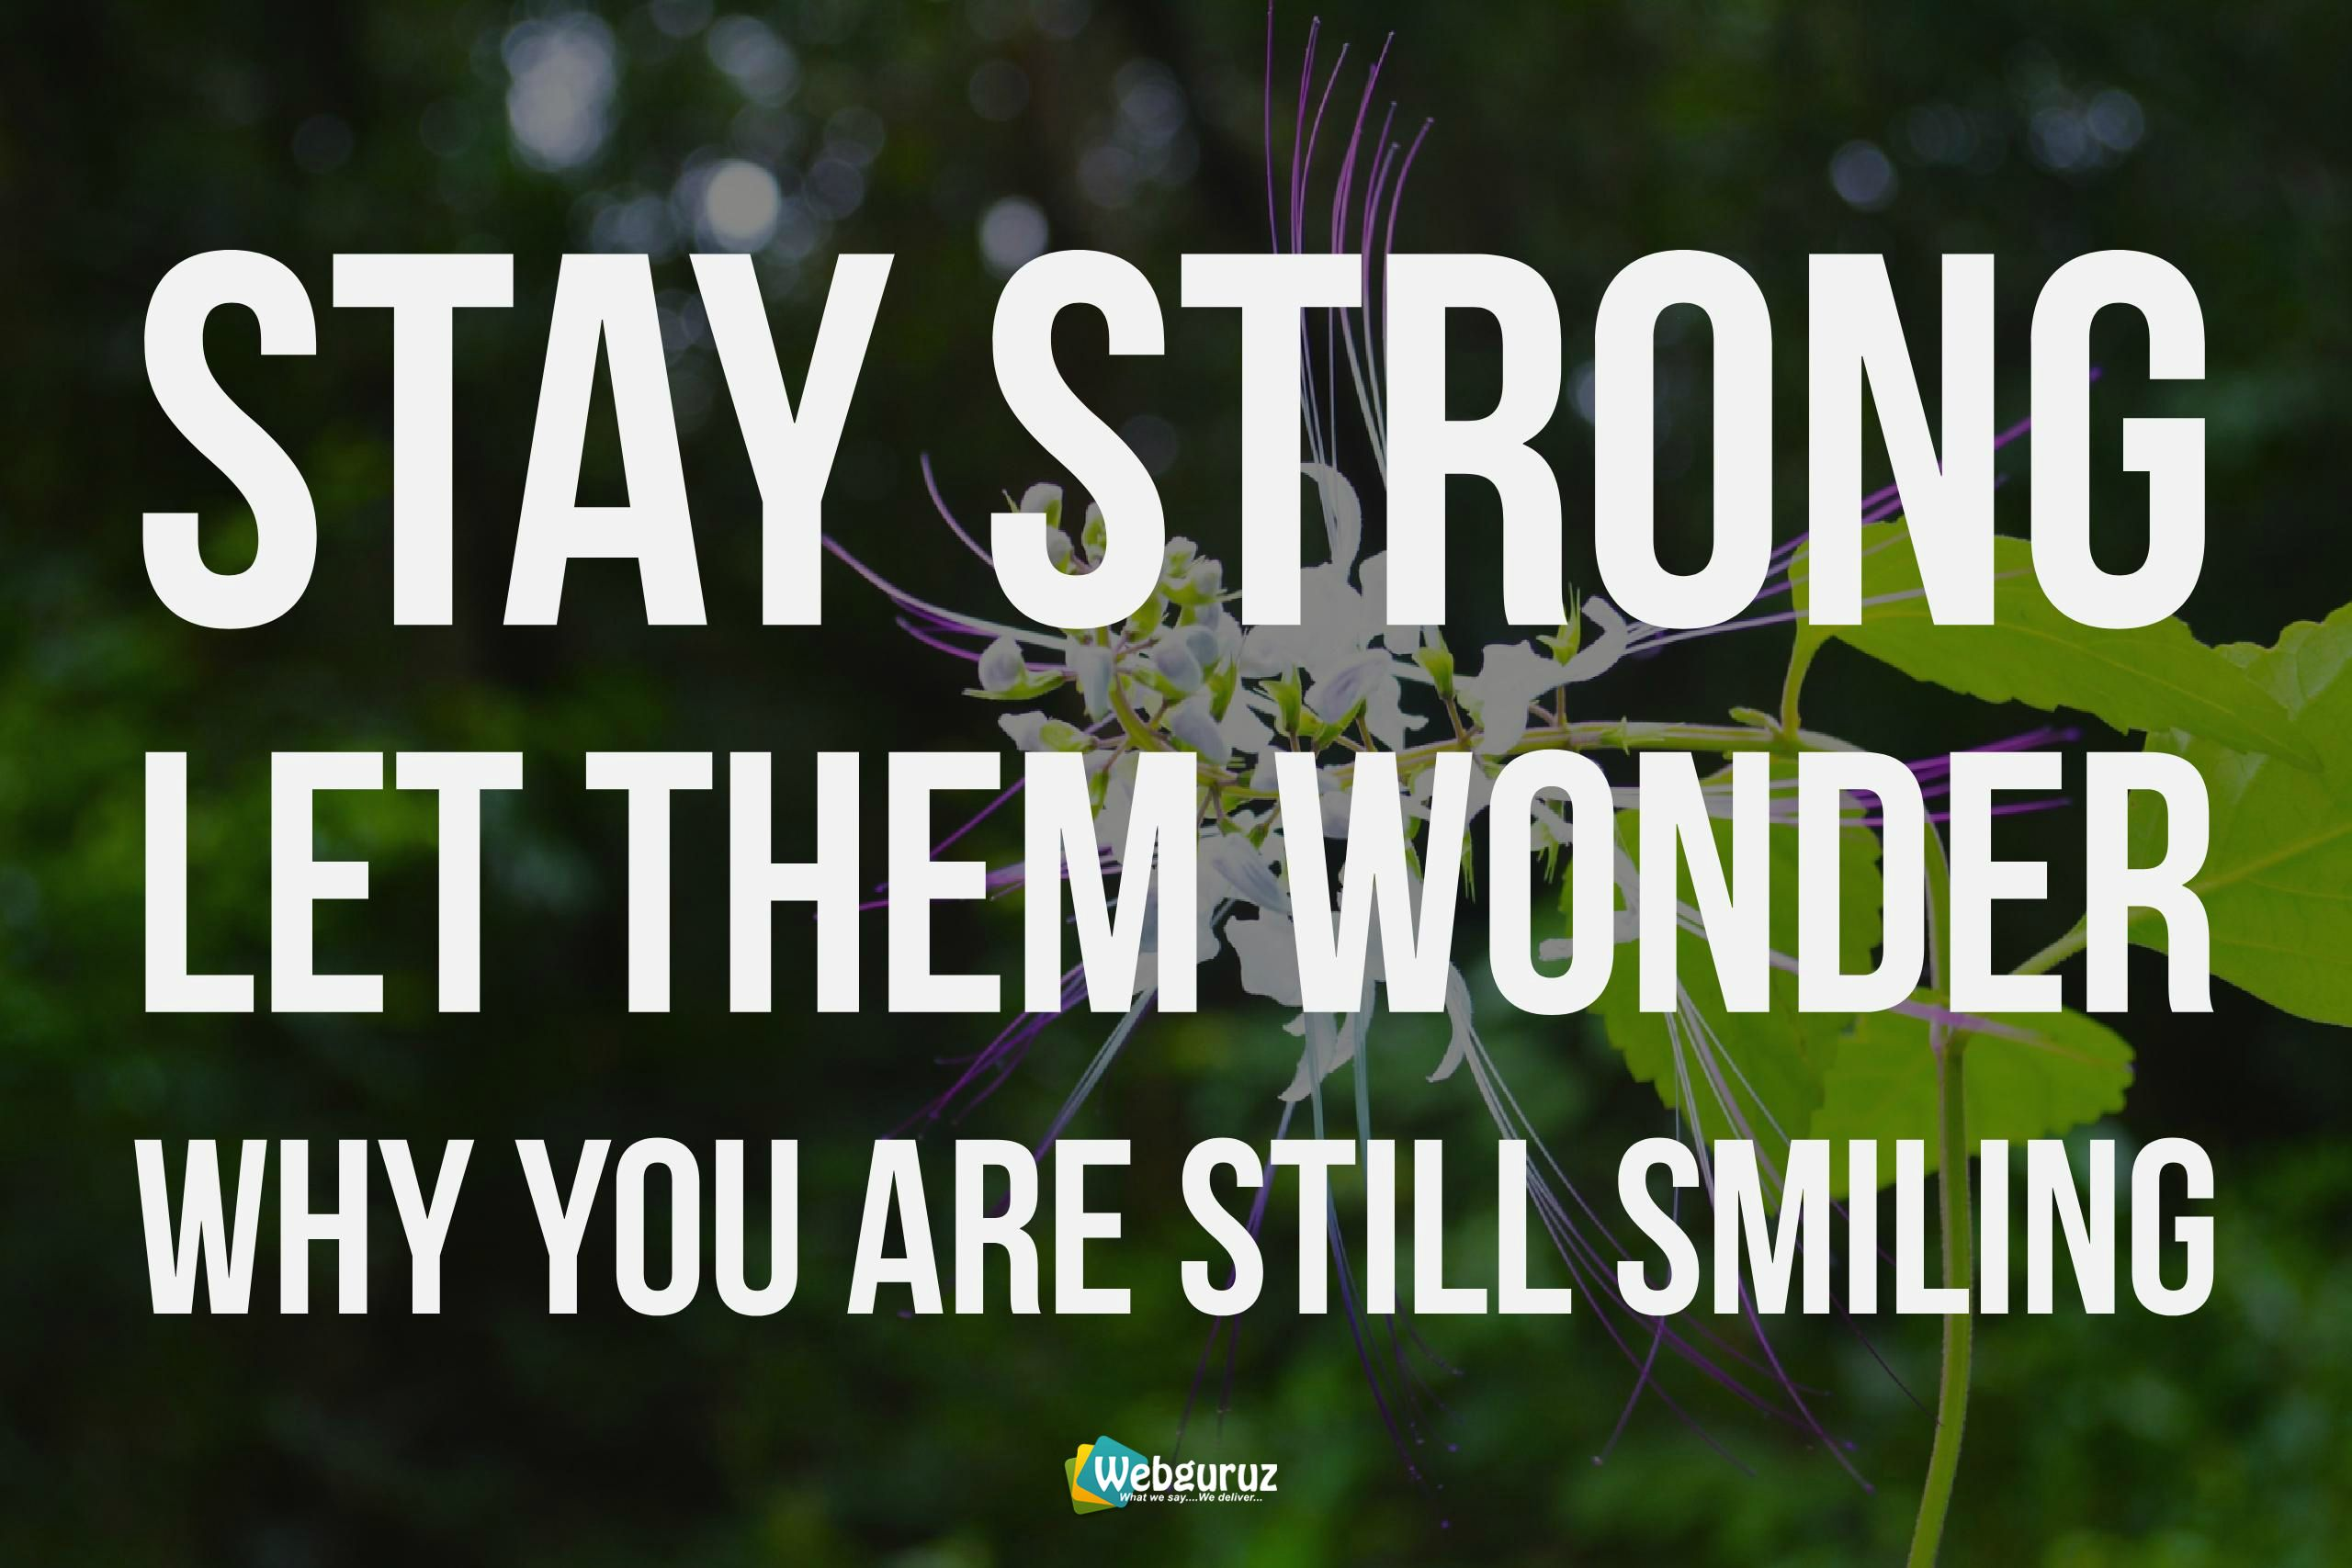 Stay Strong Let Them Wonder Why You are Still Smiling